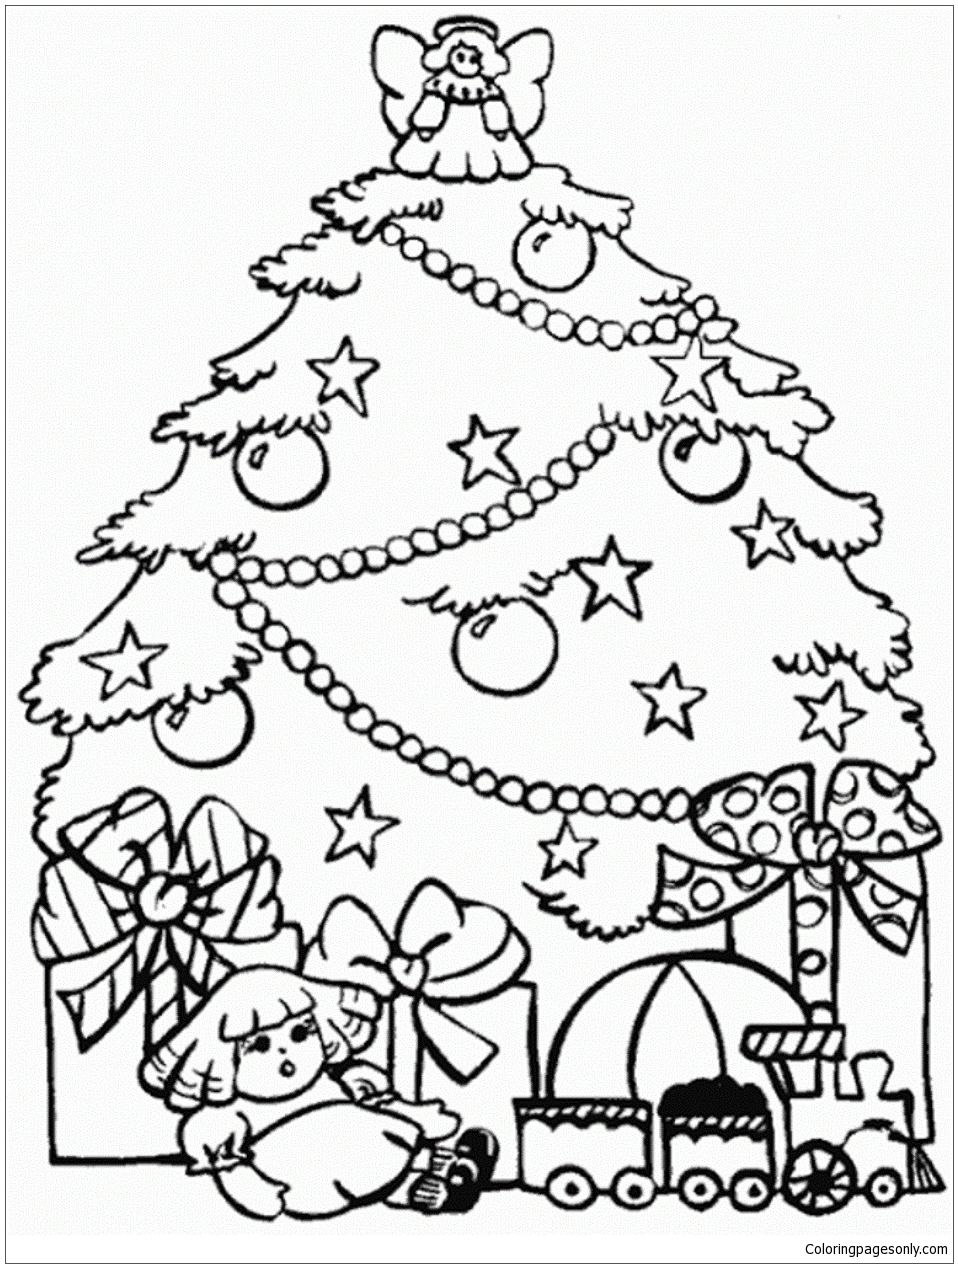 Presents And Christmas Tree Coloring Page - Free Coloring Pages Online